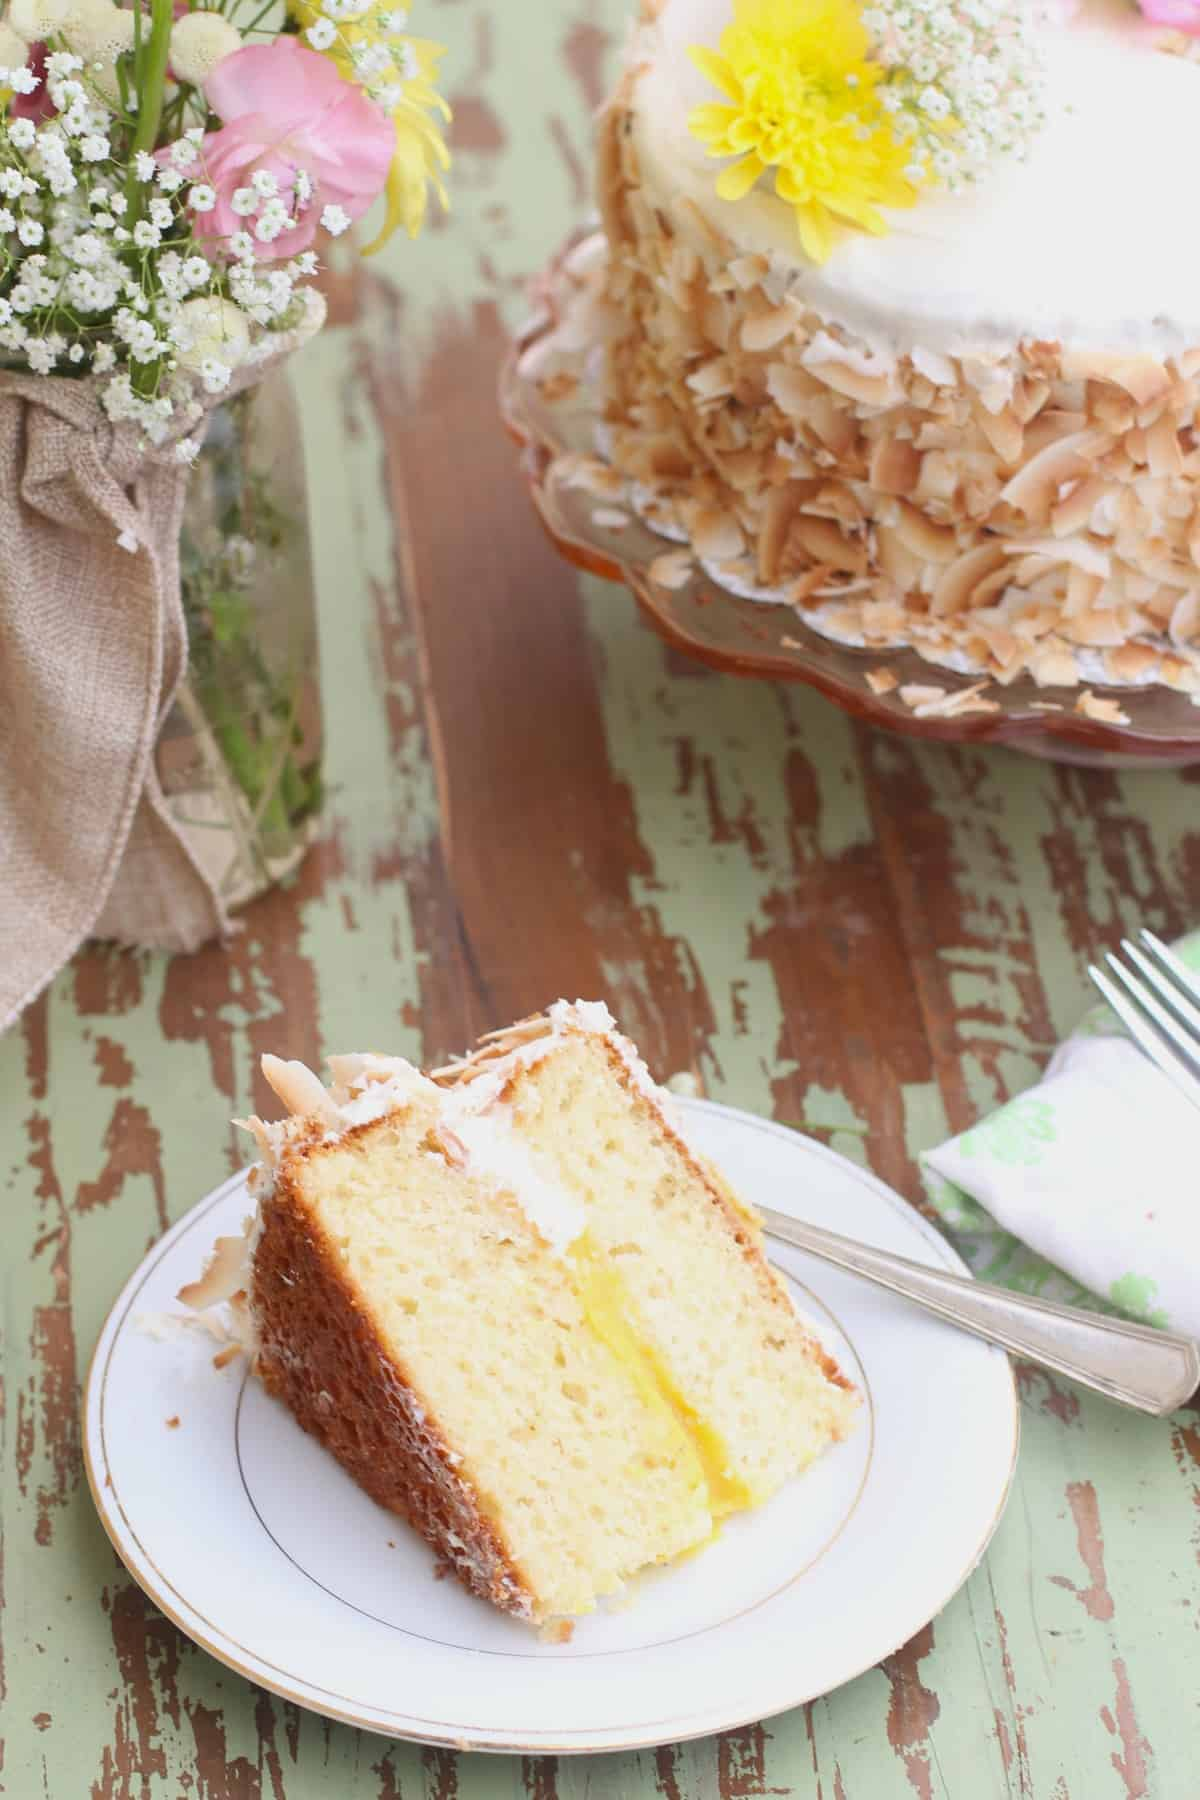 Coconut Cake with Mango Curd Filling